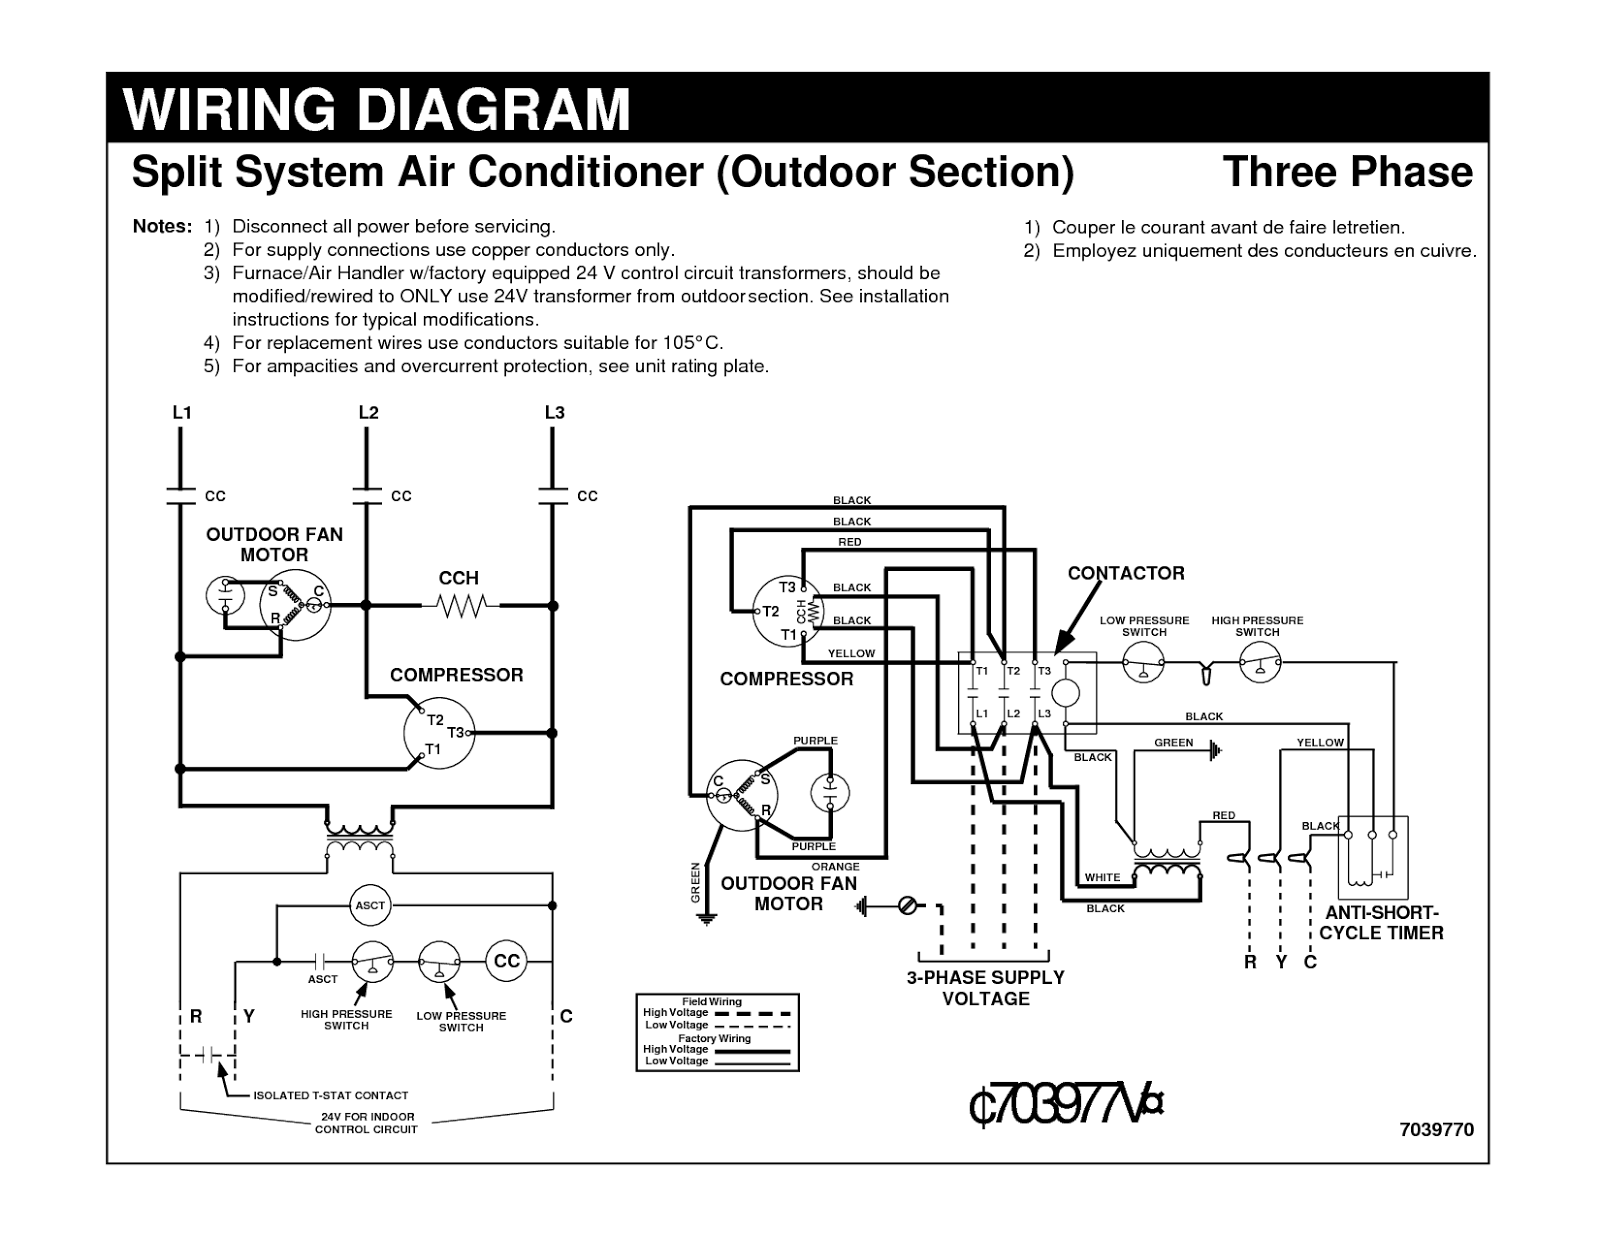 wiring+diagram+in+the+user+manual electrical wiring diagrams for air conditioning systems part one vauxhall astra air conditioning wiring diagram at arjmand.co